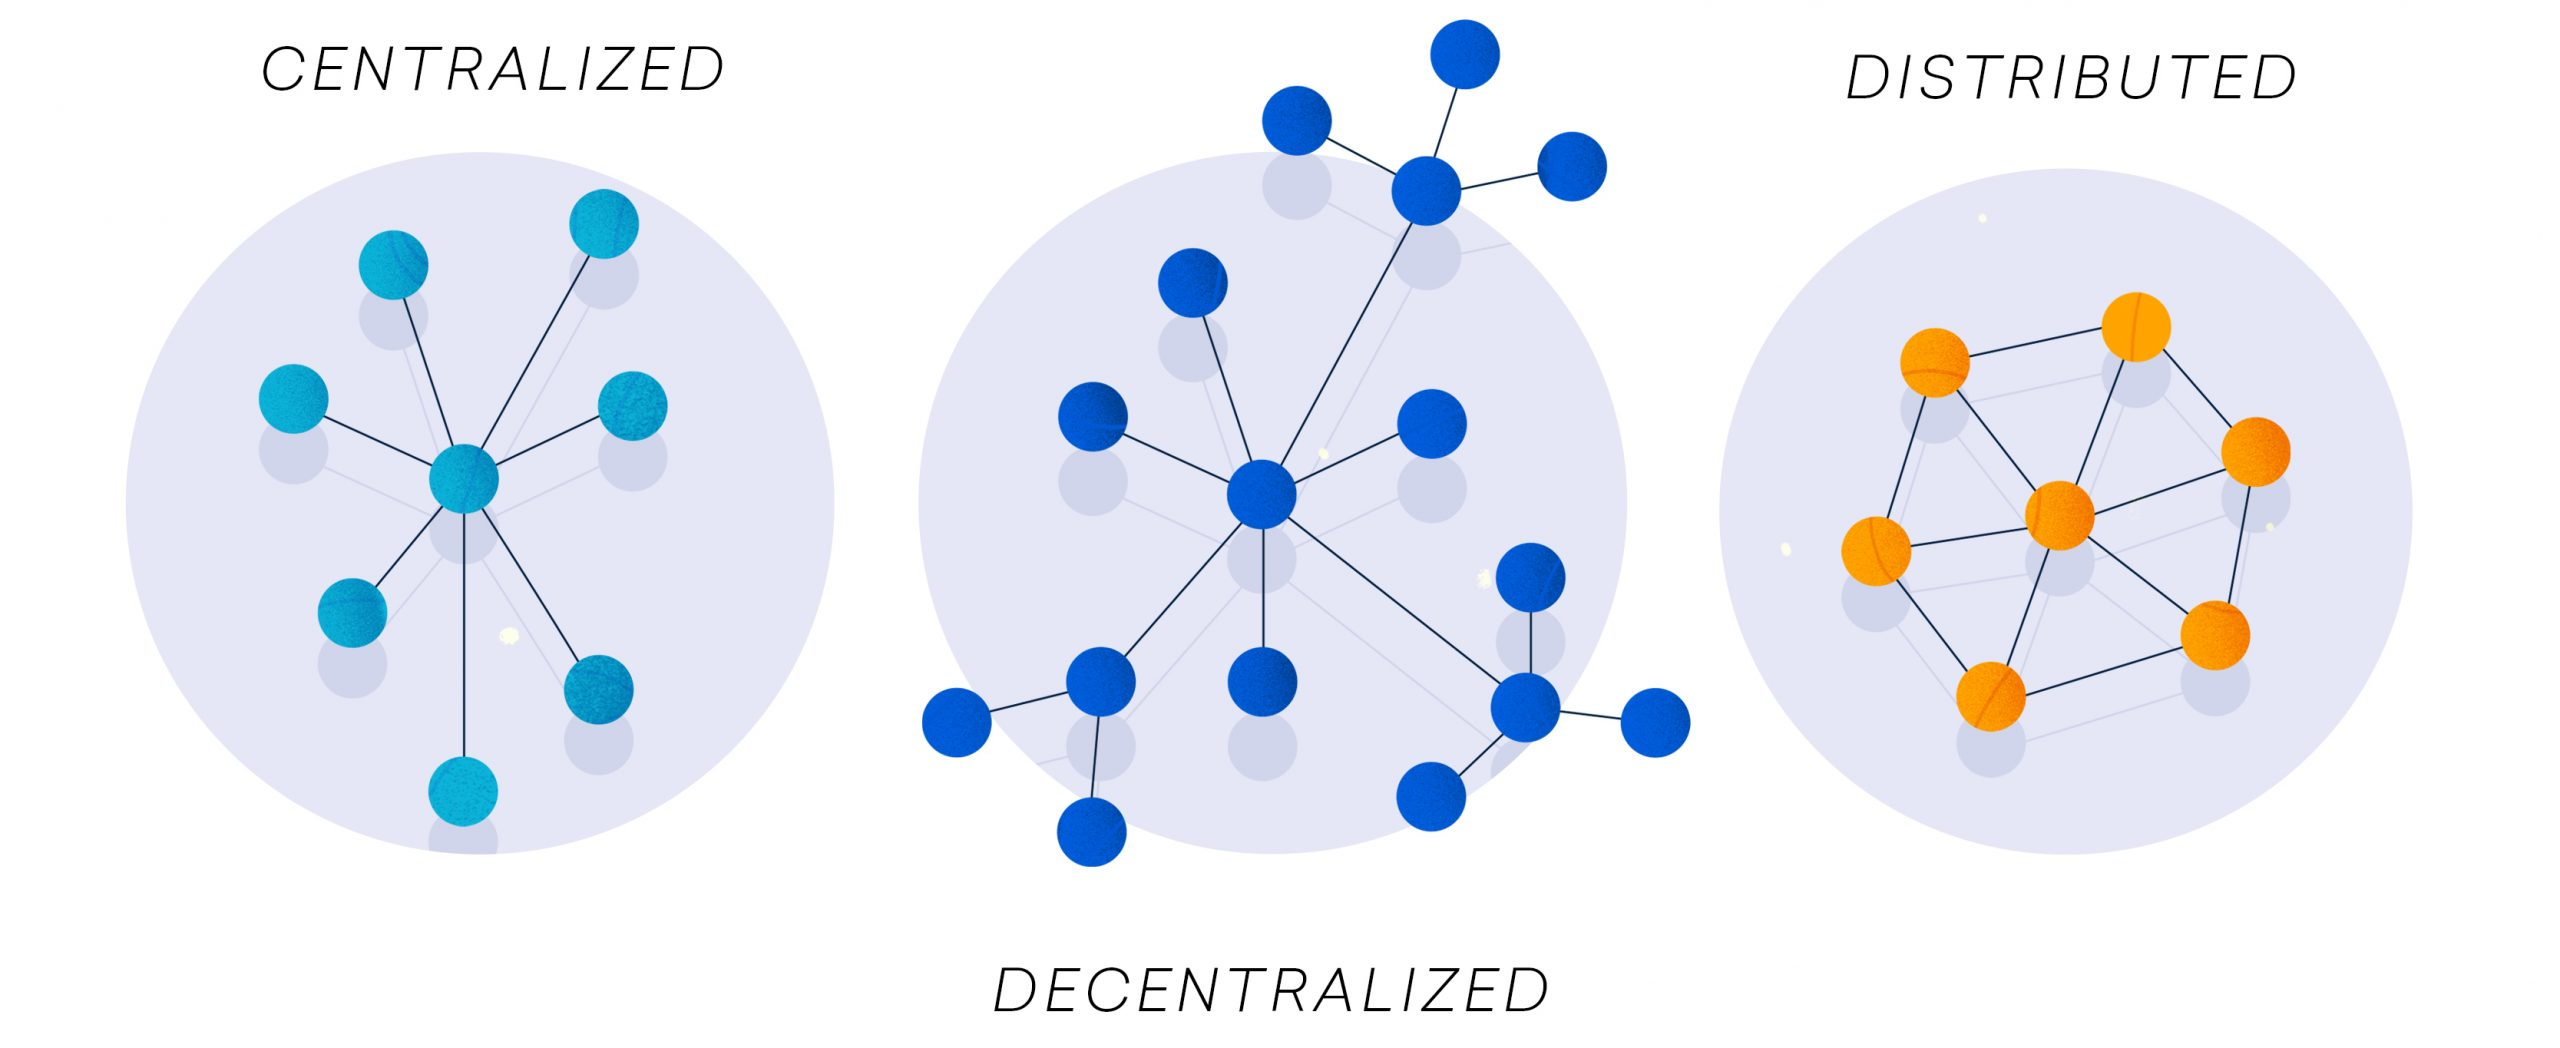 Centralized, Descentralized, Distributed Systems